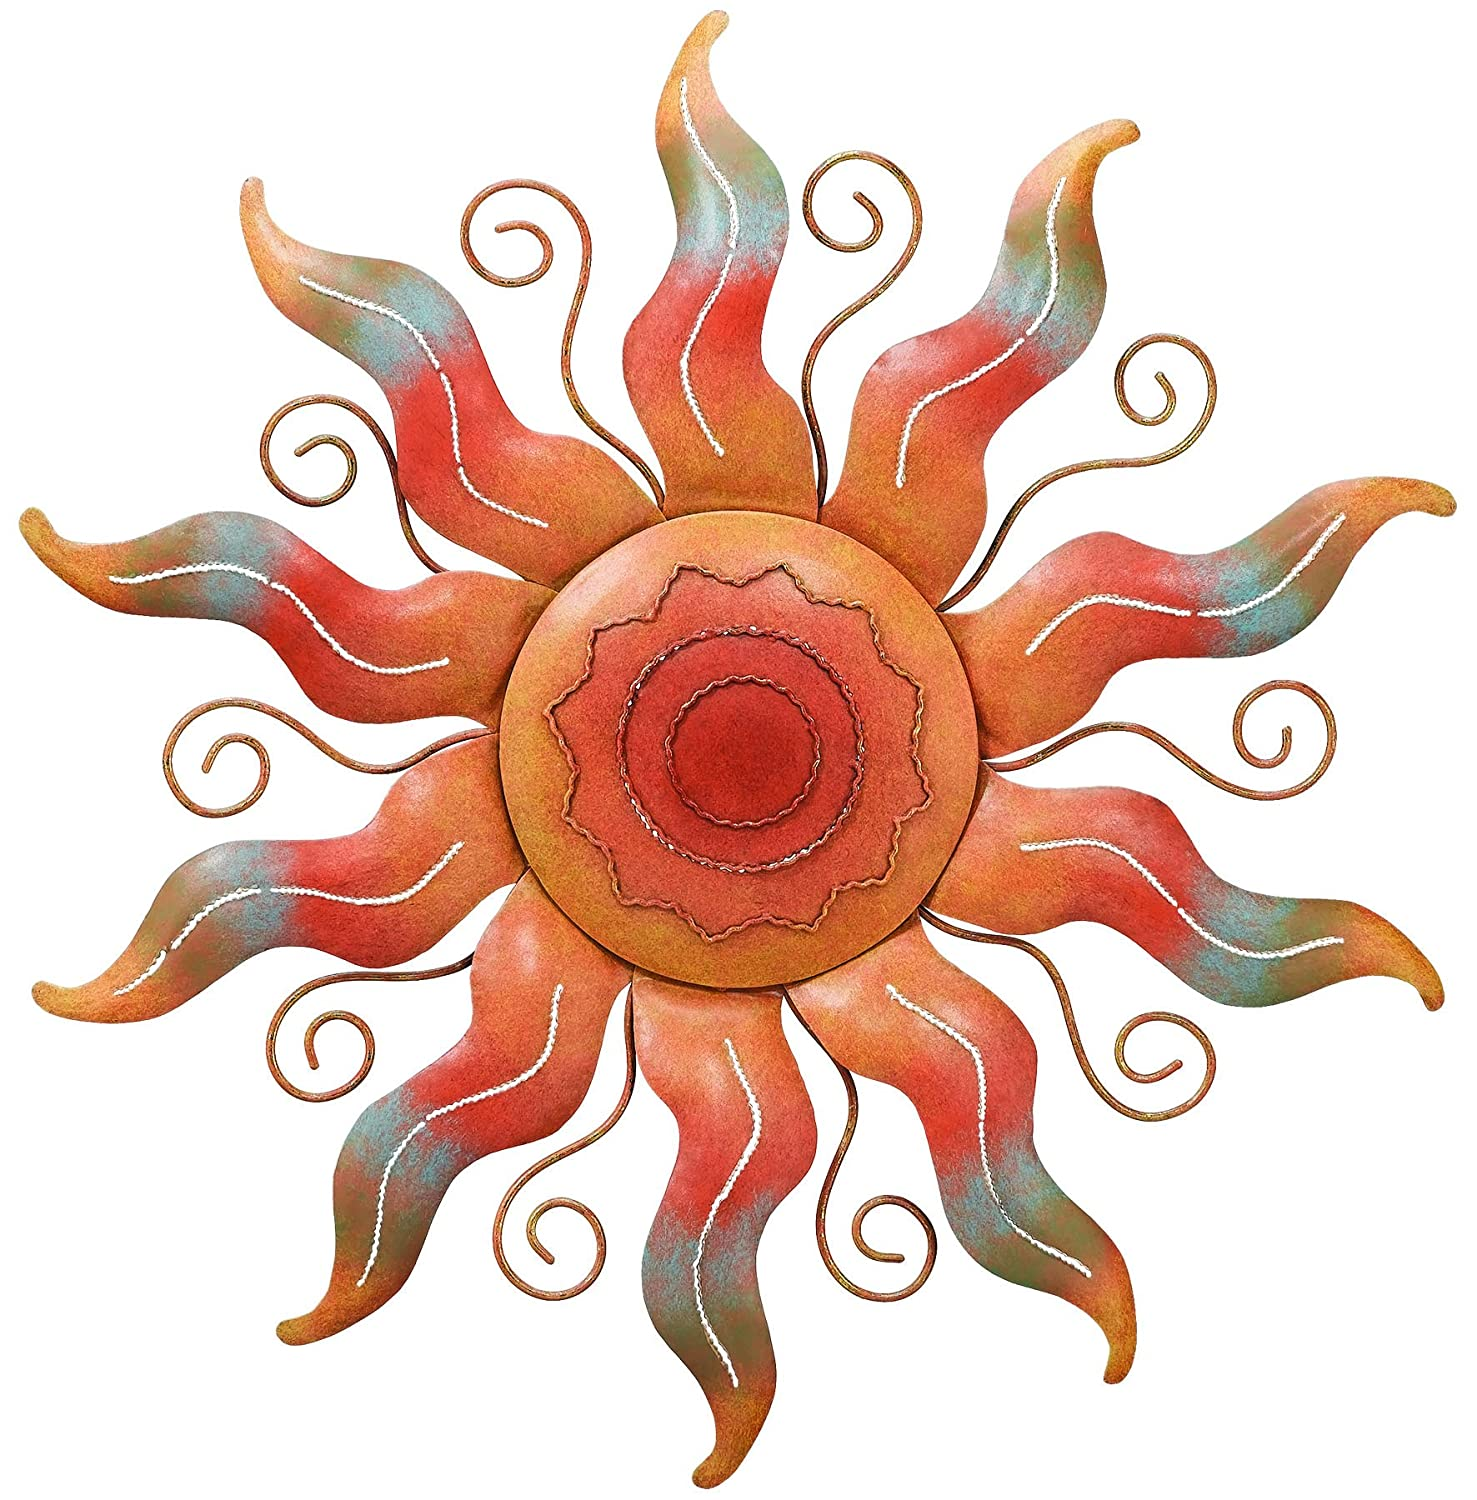 Amazon.com : Regal Art &Gift Sun Wall Decor : Wall Sculptures ...